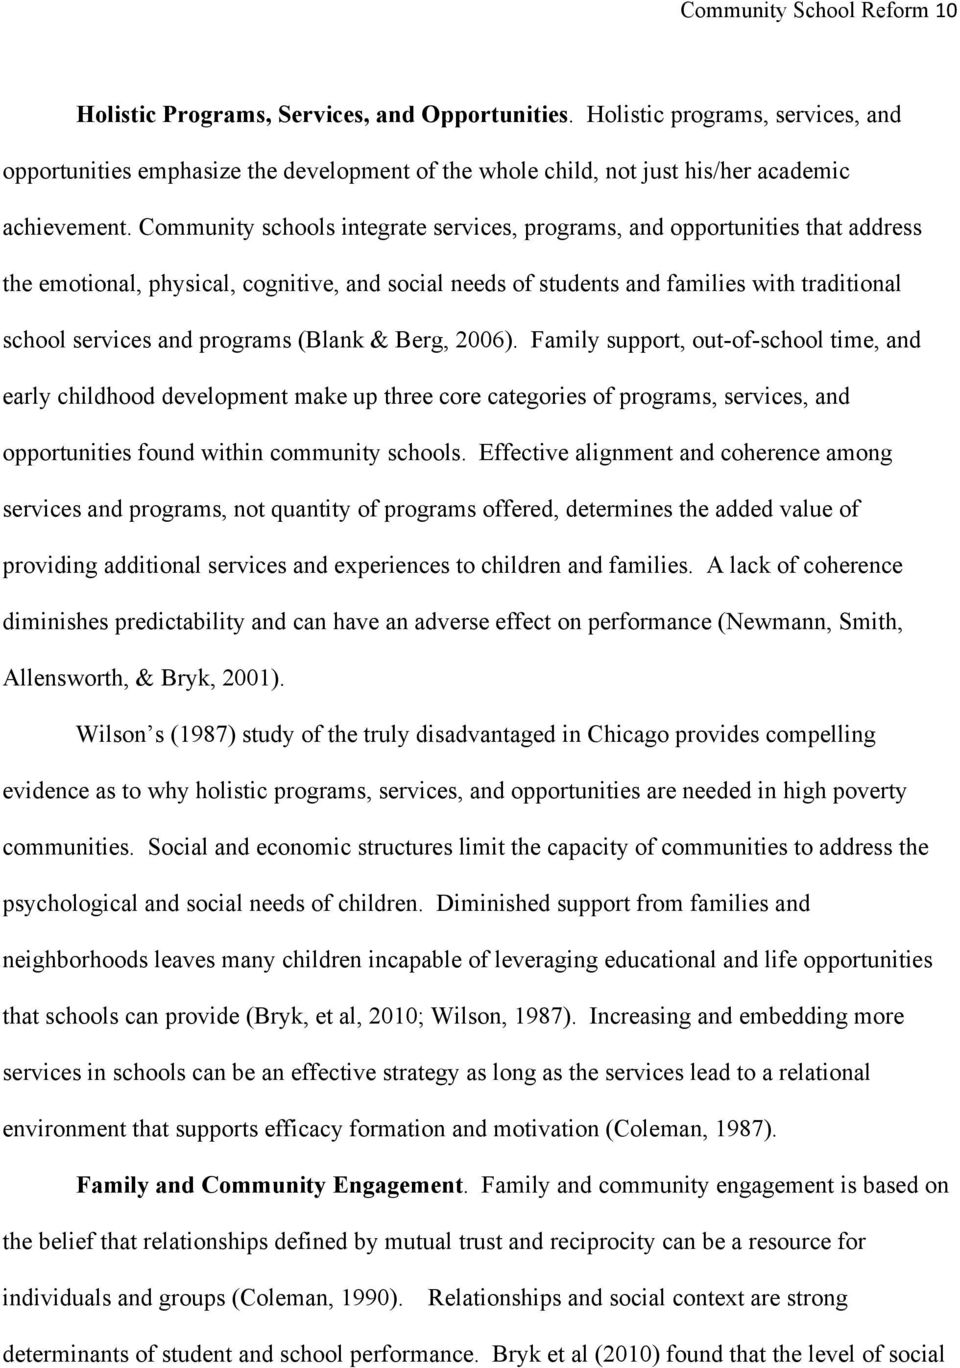 Community schools integrate services, programs, and opportunities that address the emotional, physical, cognitive, and social needs of students and families with traditional school services and